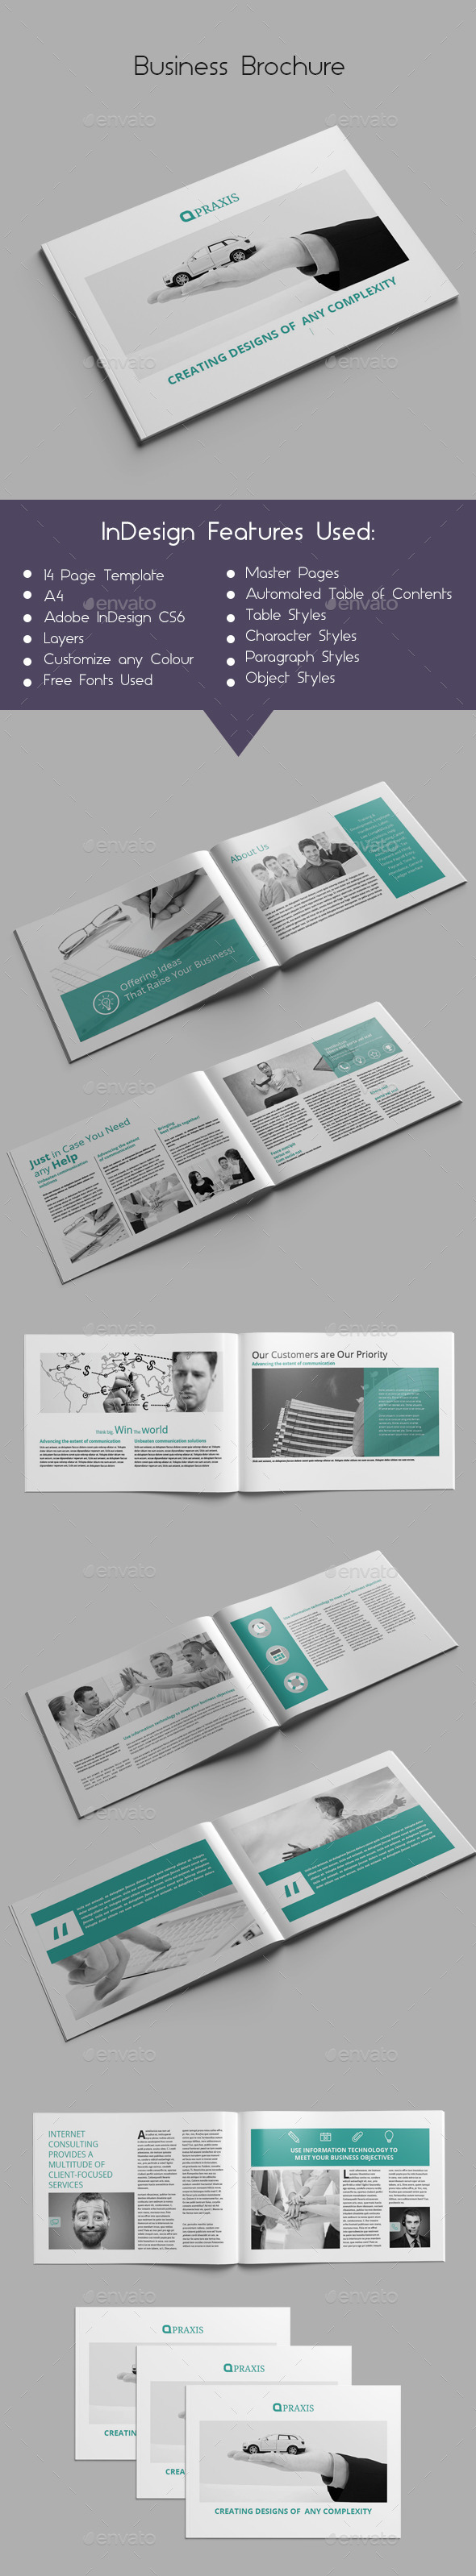 GraphicRiver Business Brochure 9901931